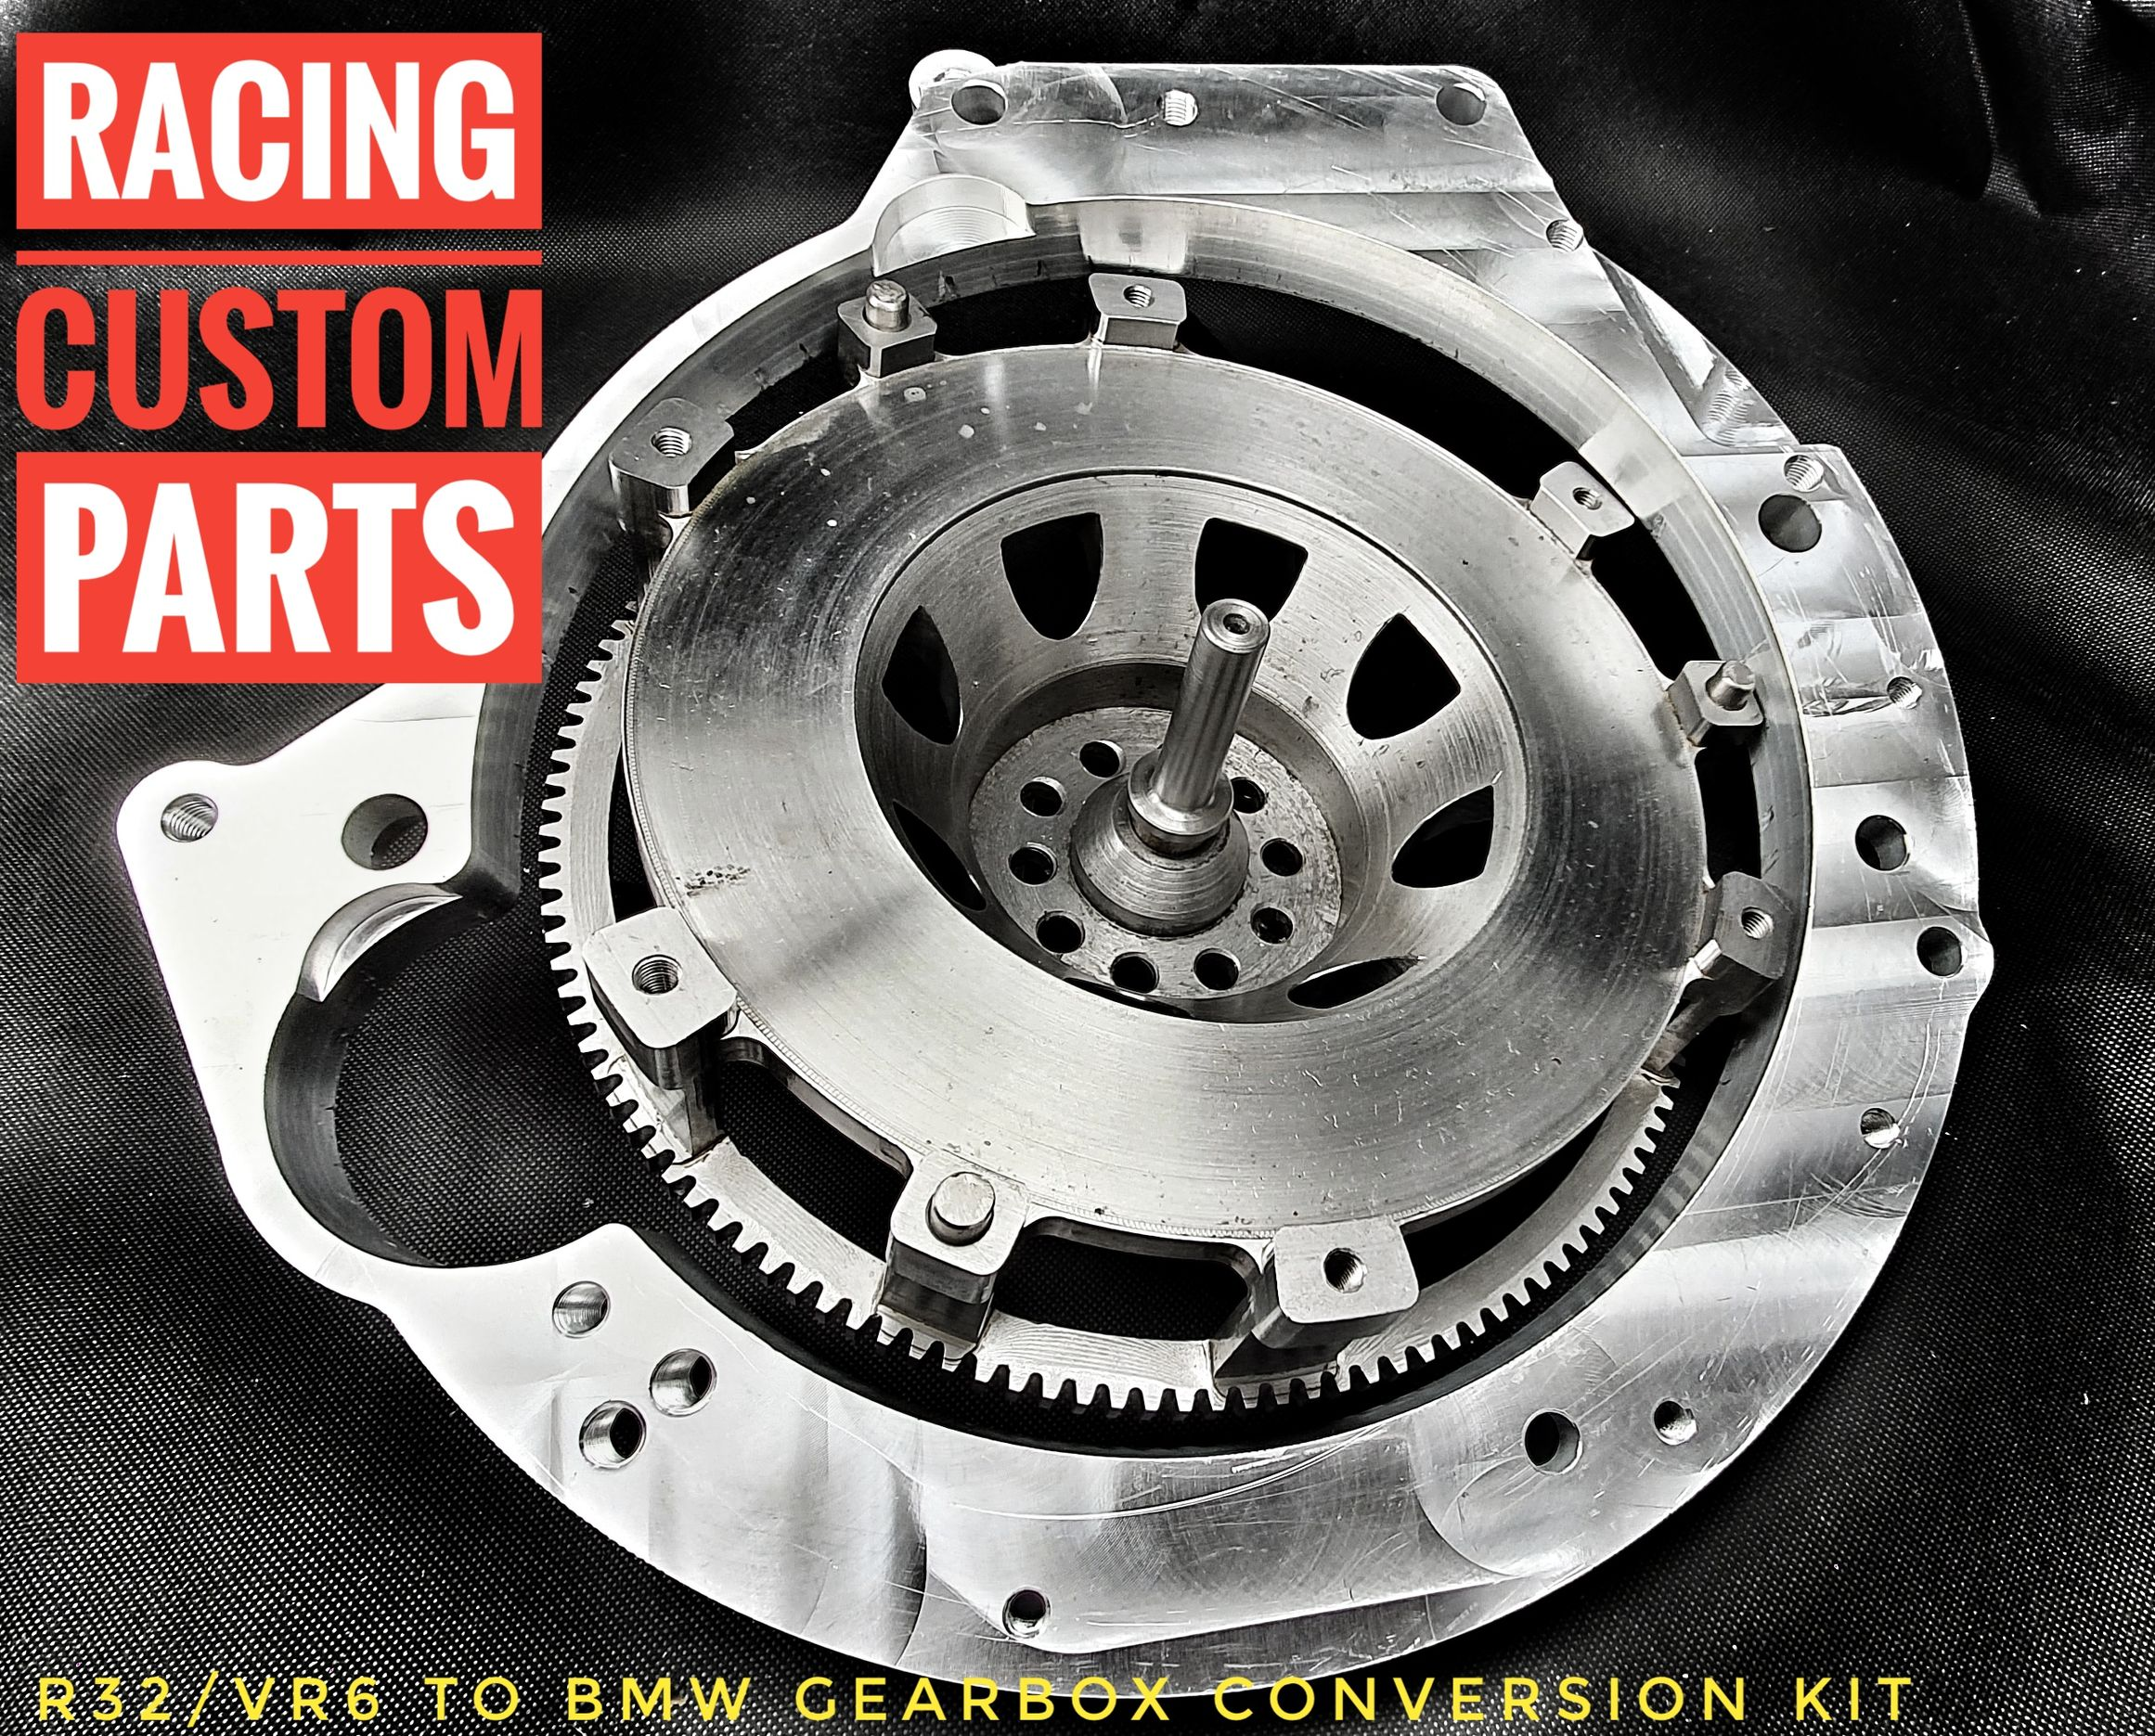 r32 vr6 bmw rwd gearbox conversion kit billet cnc racing custom parts